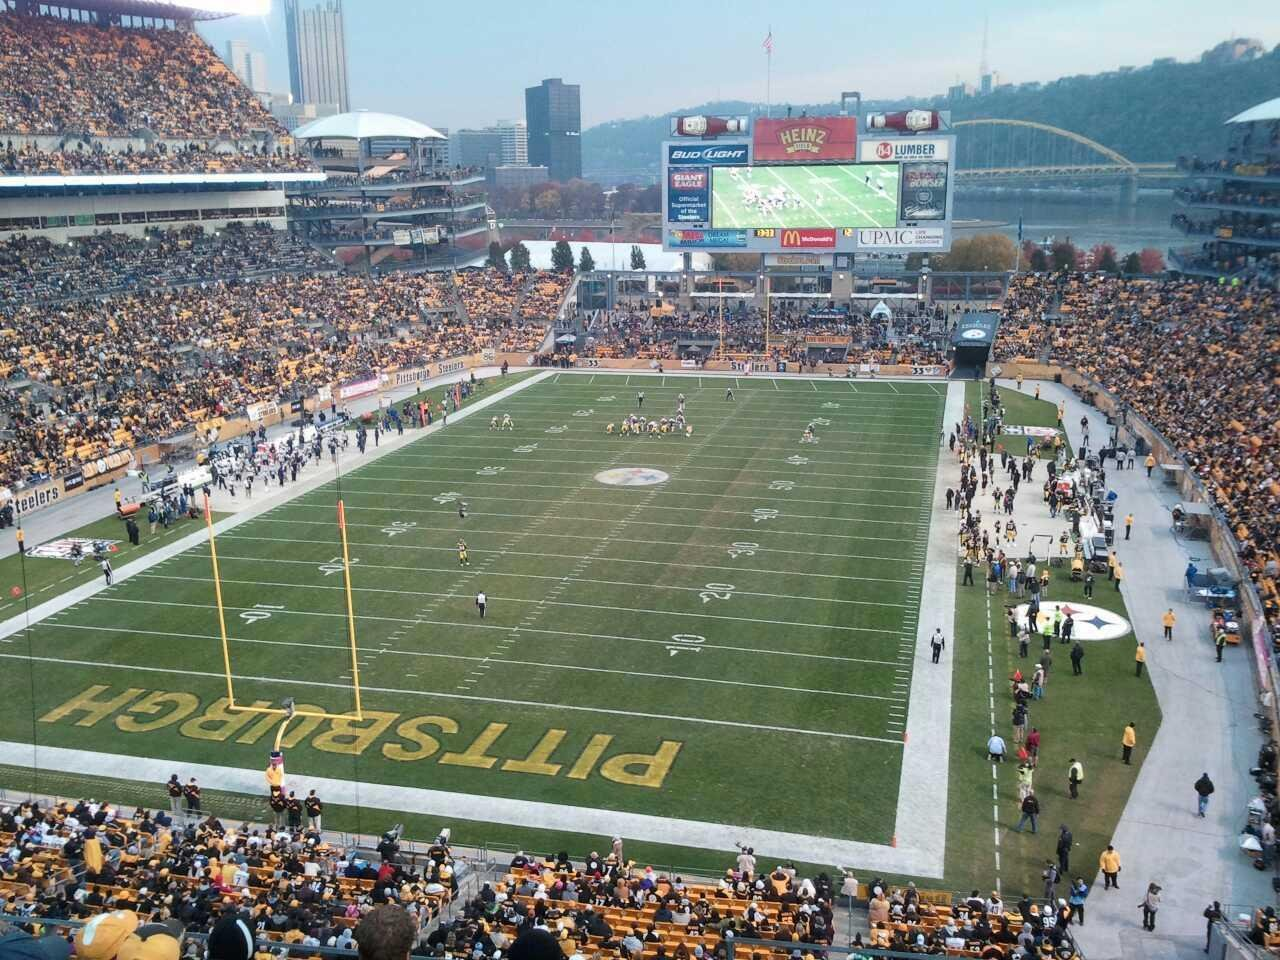 Pictures of heinz field pittsburgh pa Christopher Banks at 6191 South State Street Murray, UT Missy